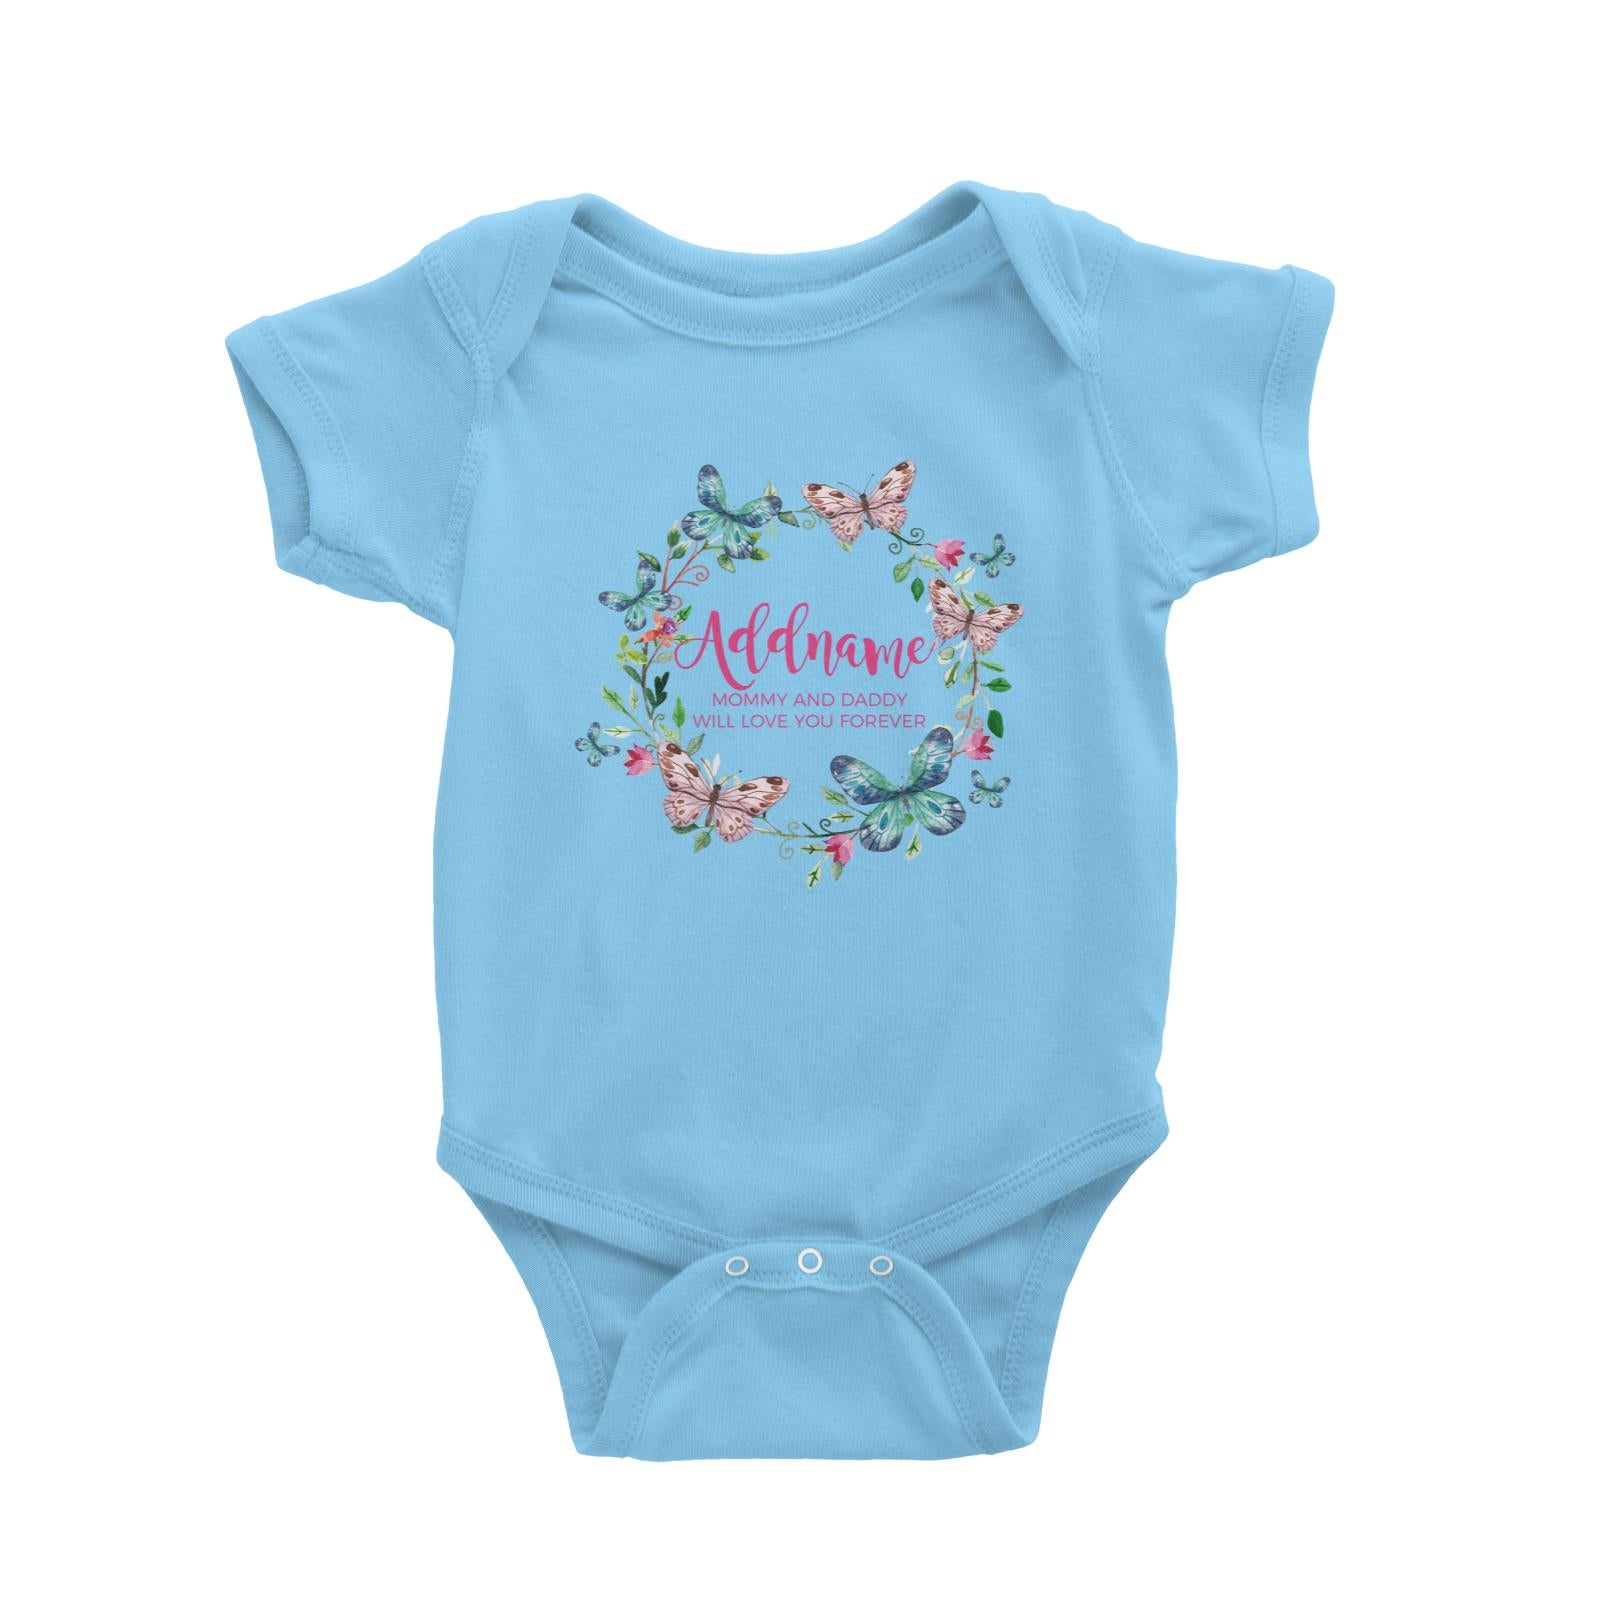 Colourful Butterflies Wreath Personalizable with Name and Text Baby Romper